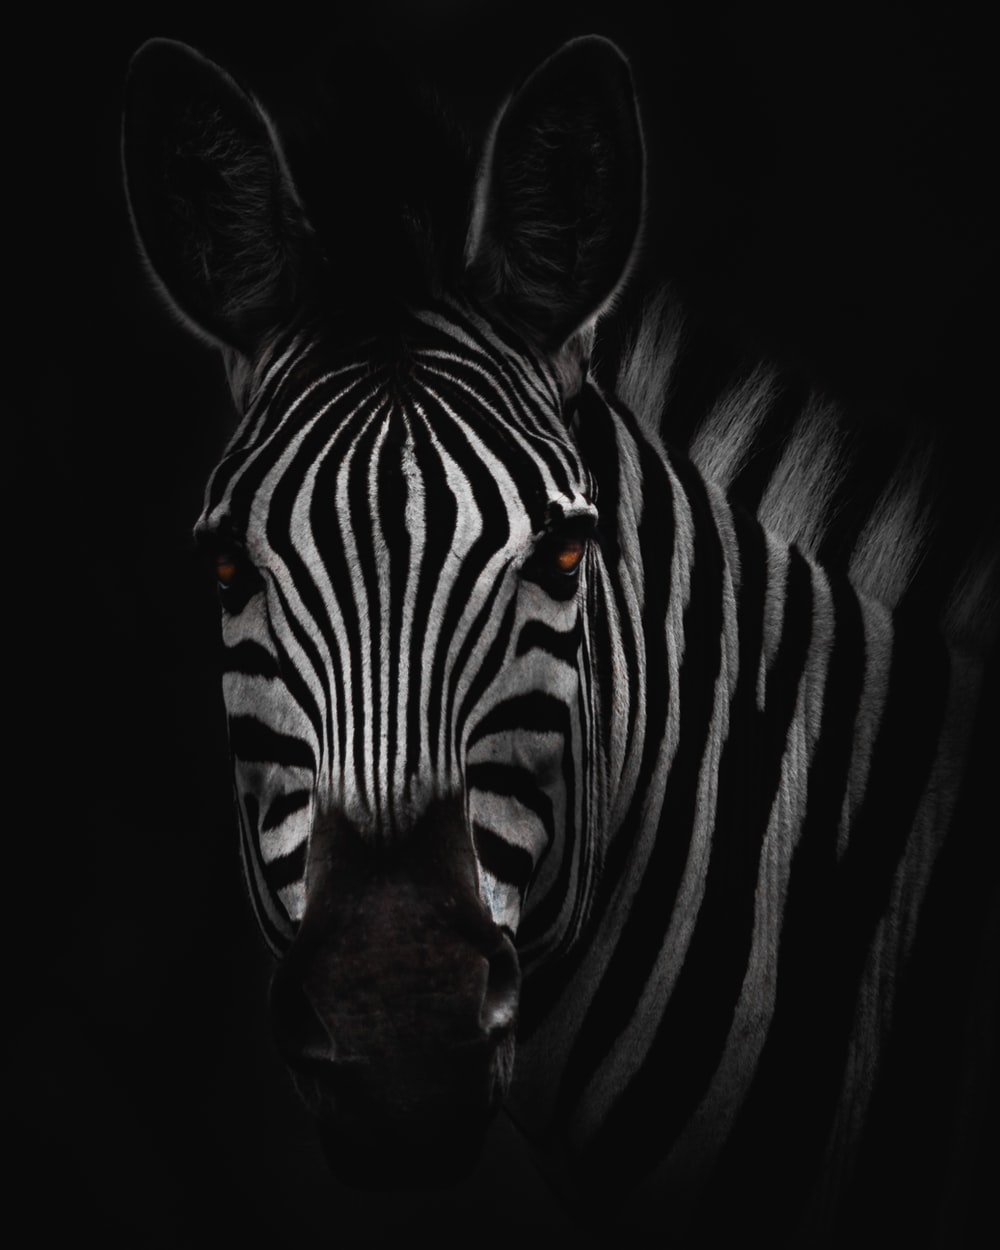 zebra in close-up photography